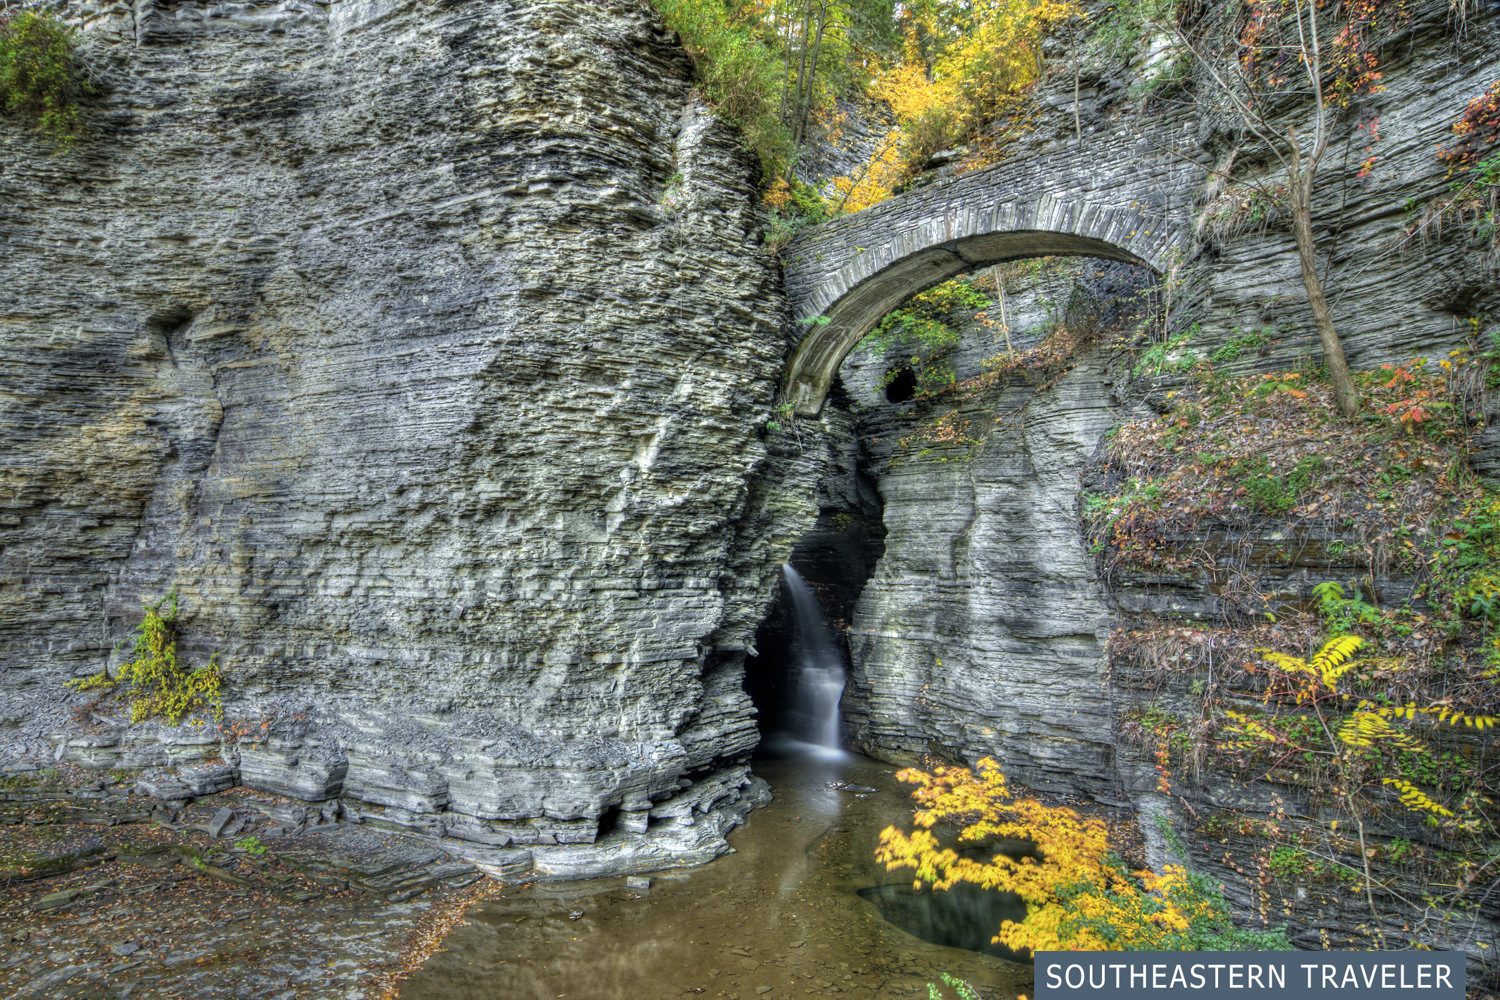 A stone bridge crossing a waterfall at the entrance to the Gorge Trail at Watkins Glen State Park in New York